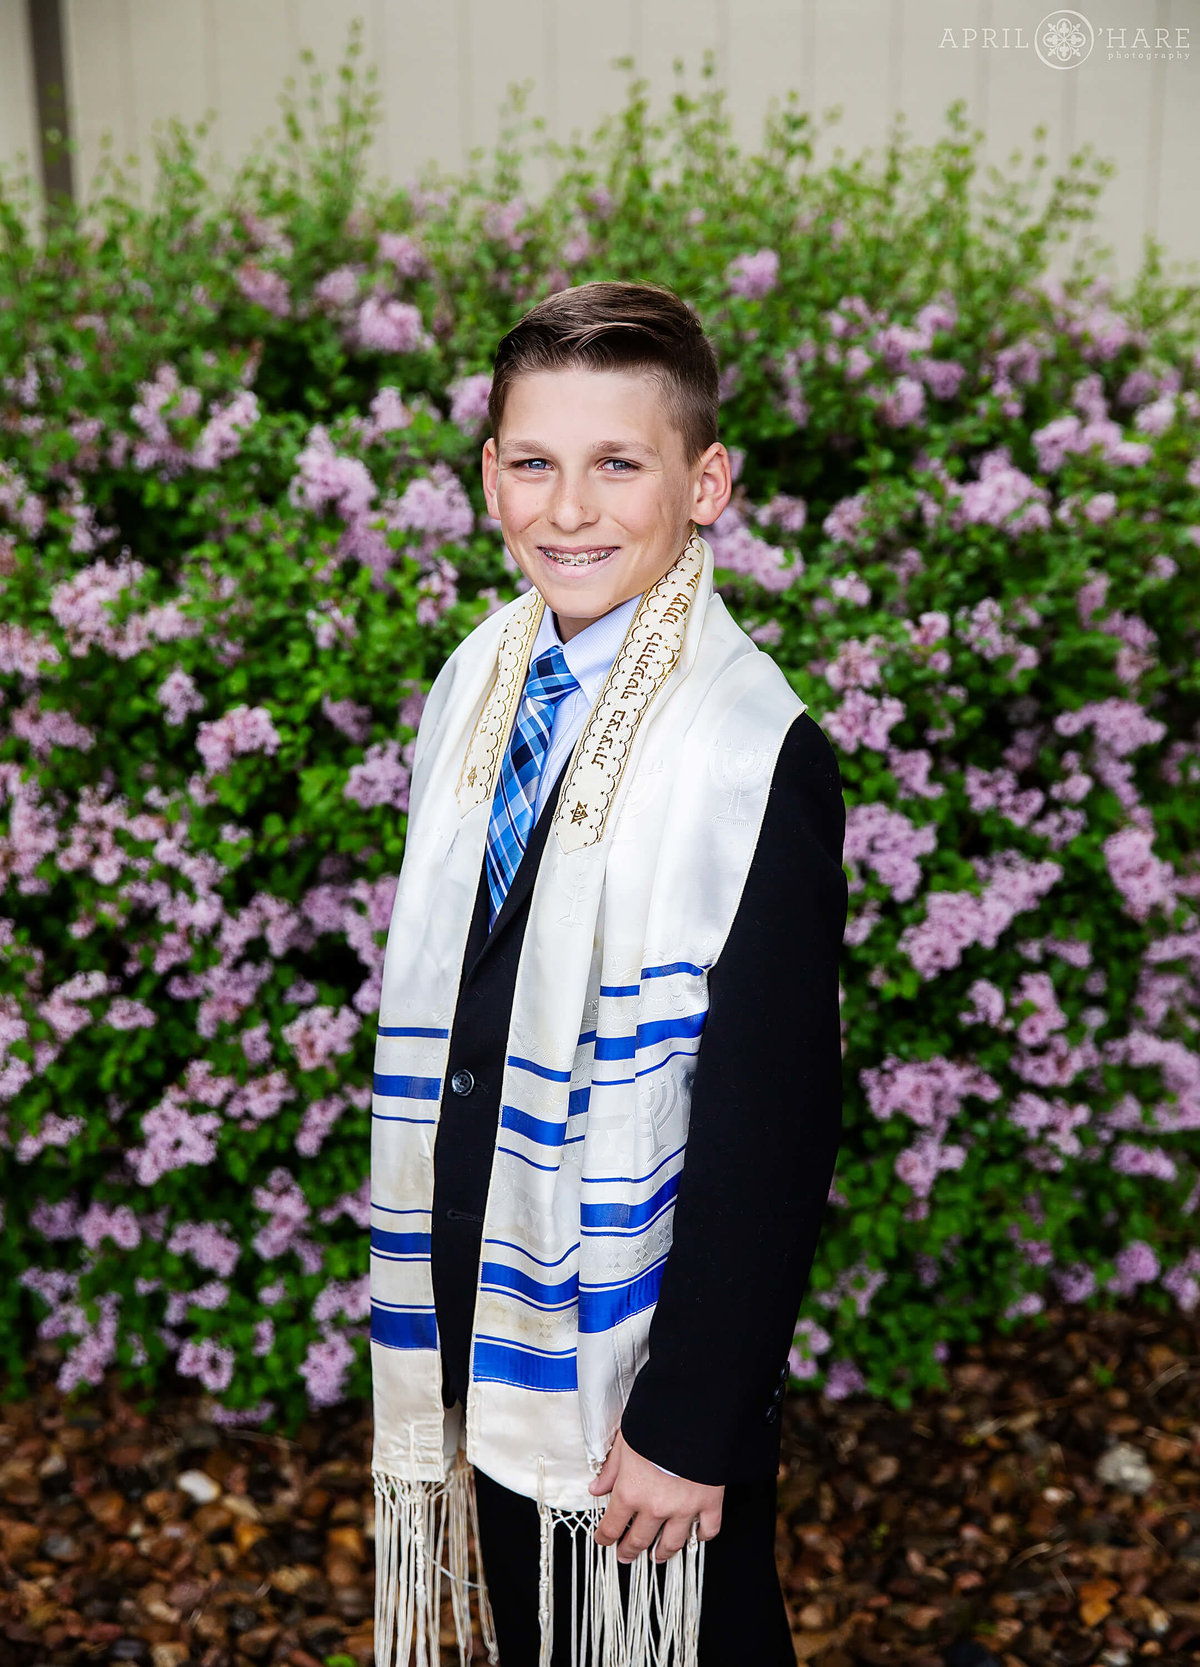 Bar Mitzvah Photography during Spring in Denver Colorado